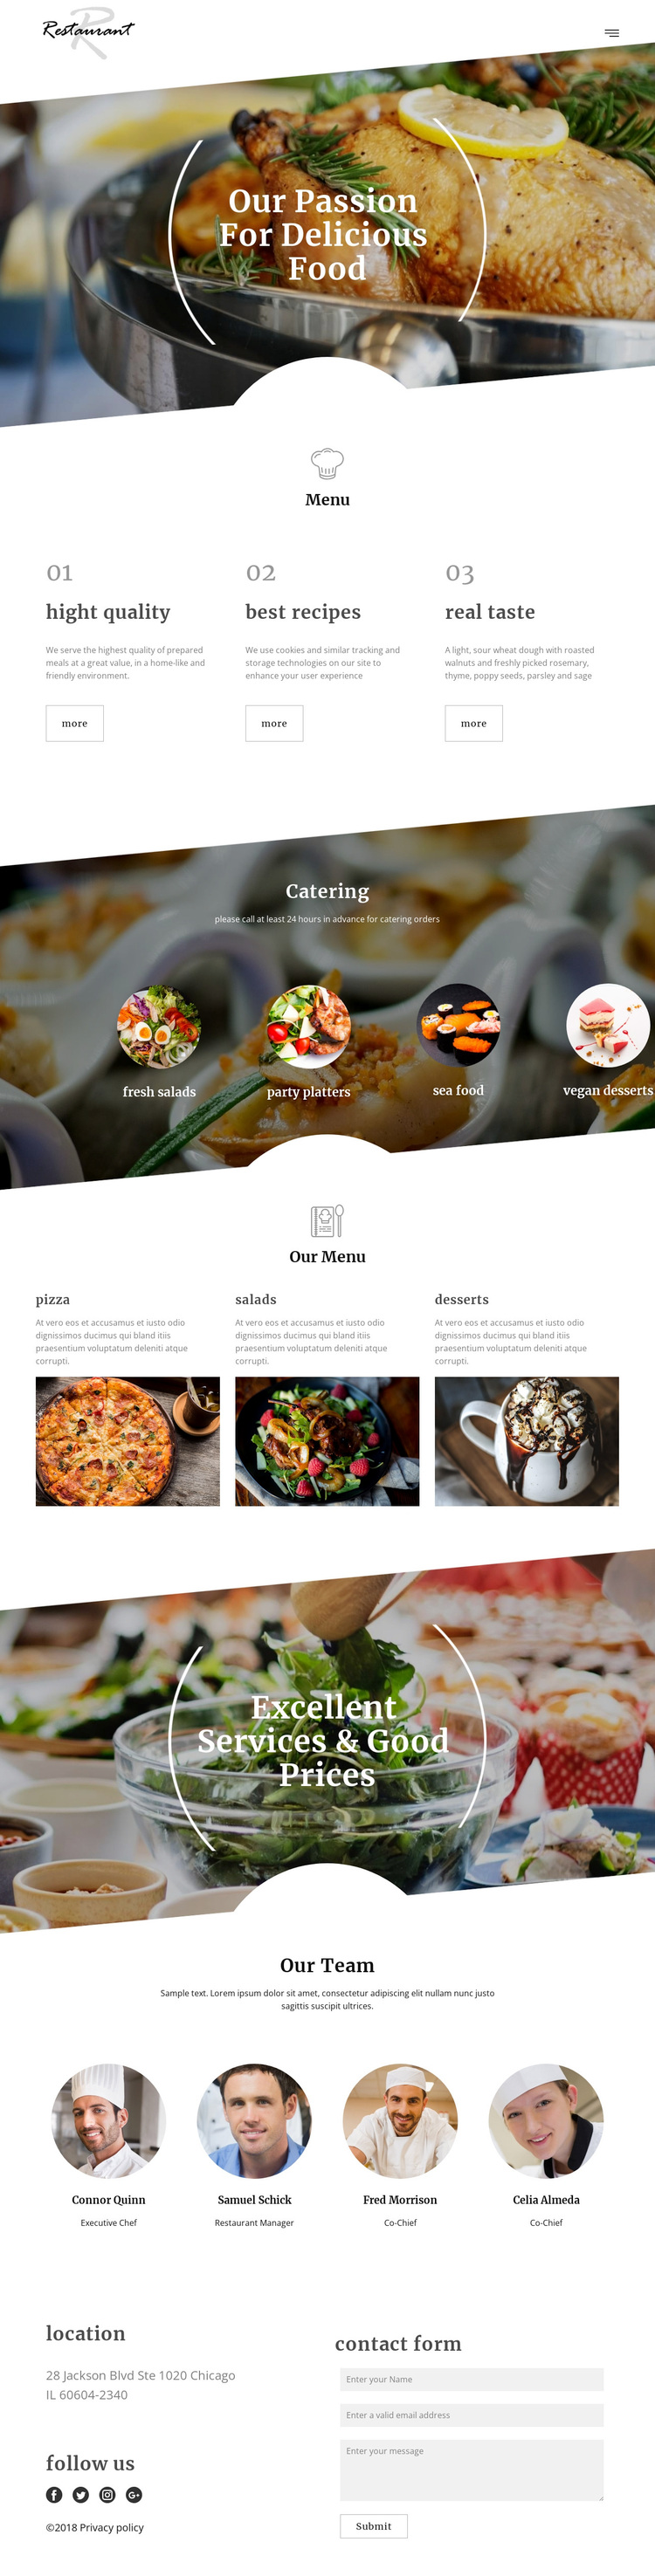 Executive chef recipes Template